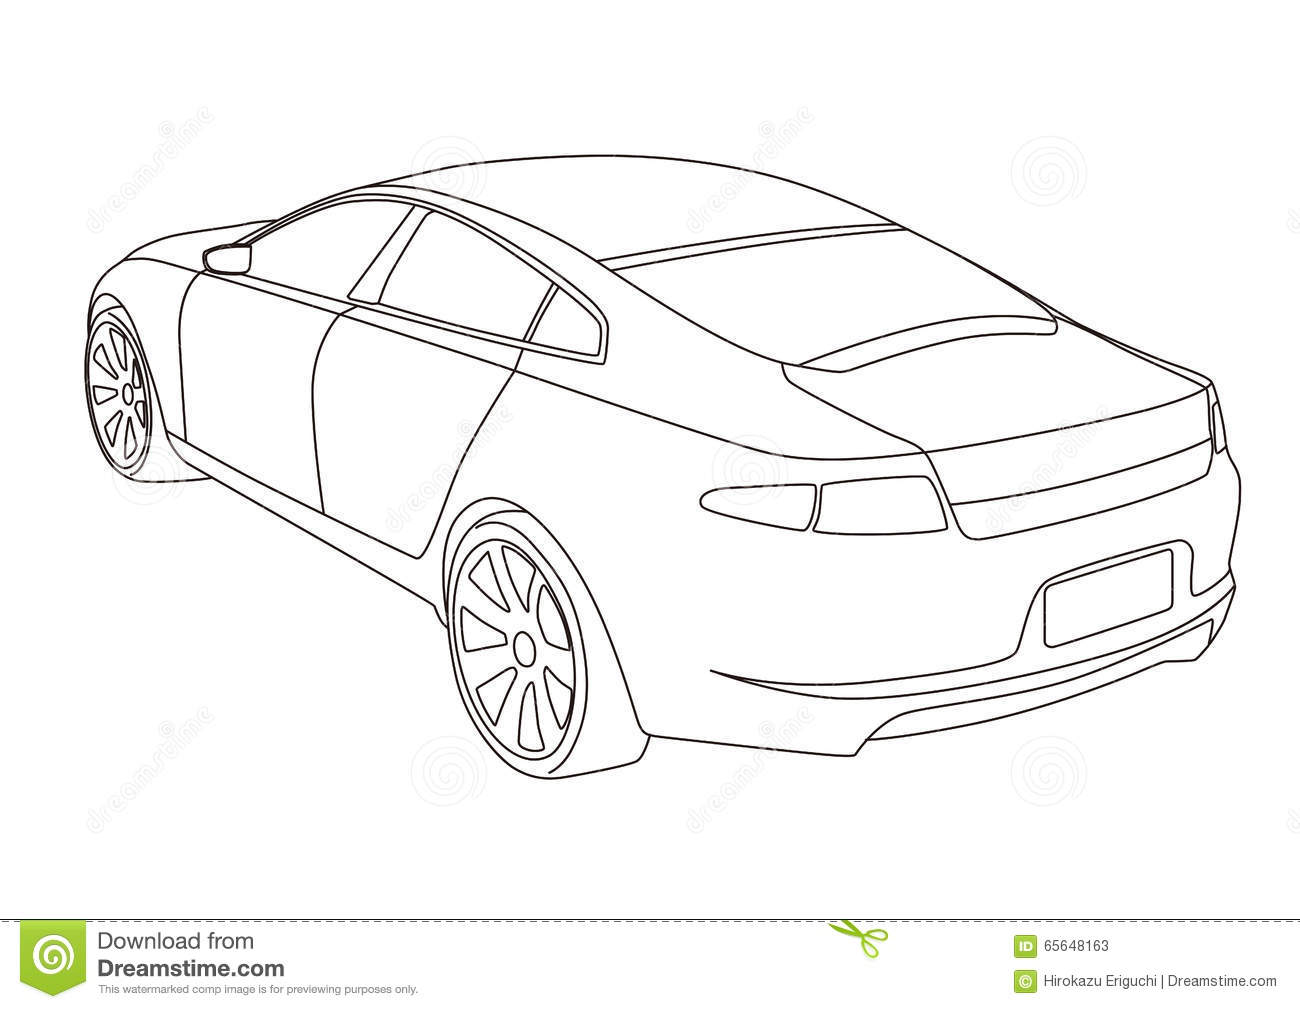 Line Drawing Car : Stock photos line drawing car illustration image